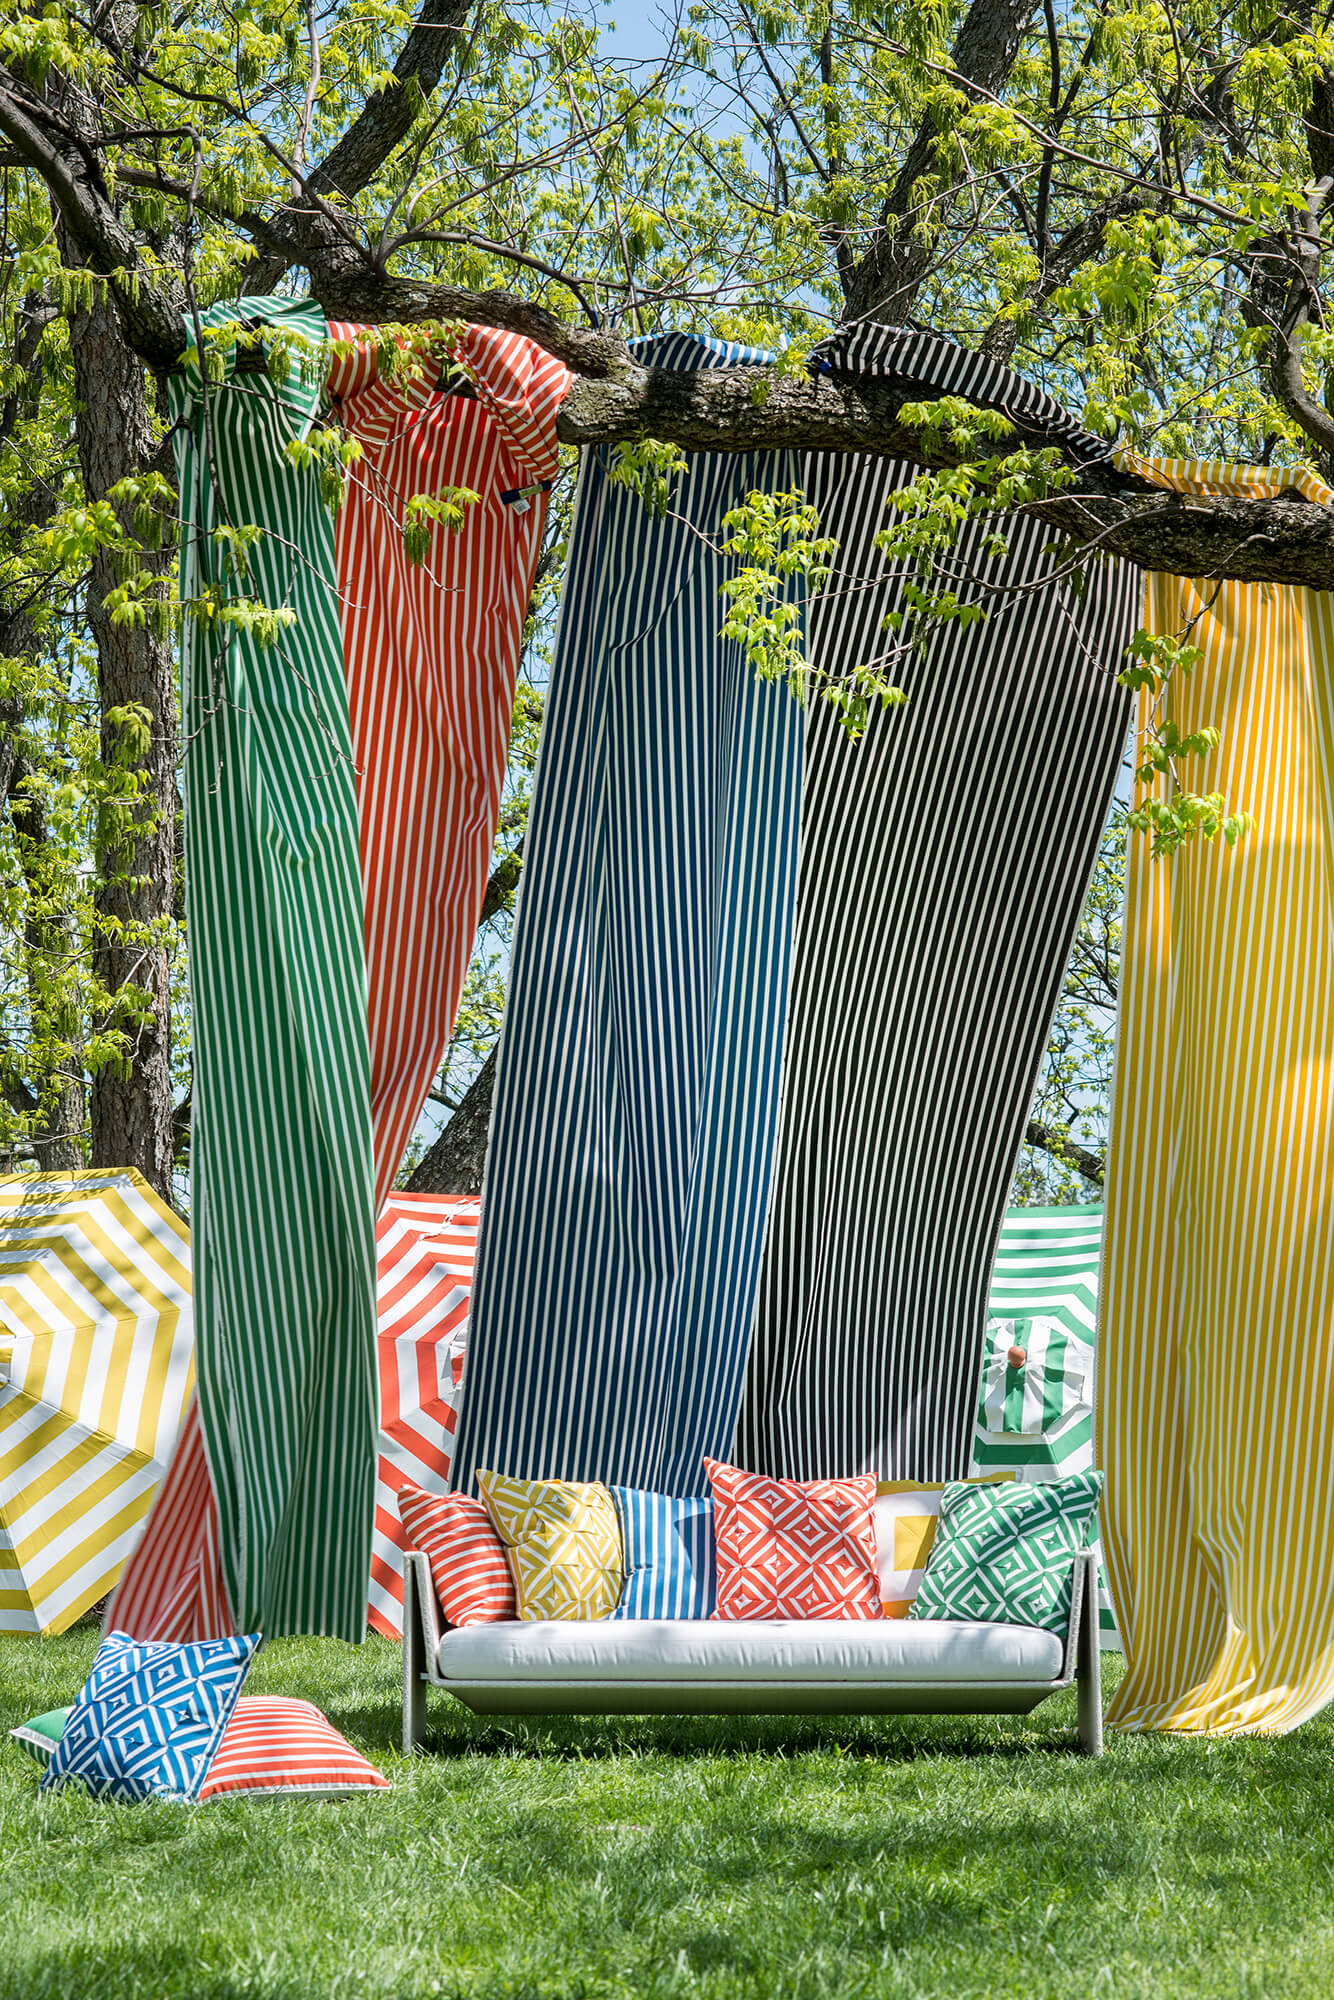 Umbrellas, cushions, and flowing fabrics in bright stripes of red, blue, and yellow